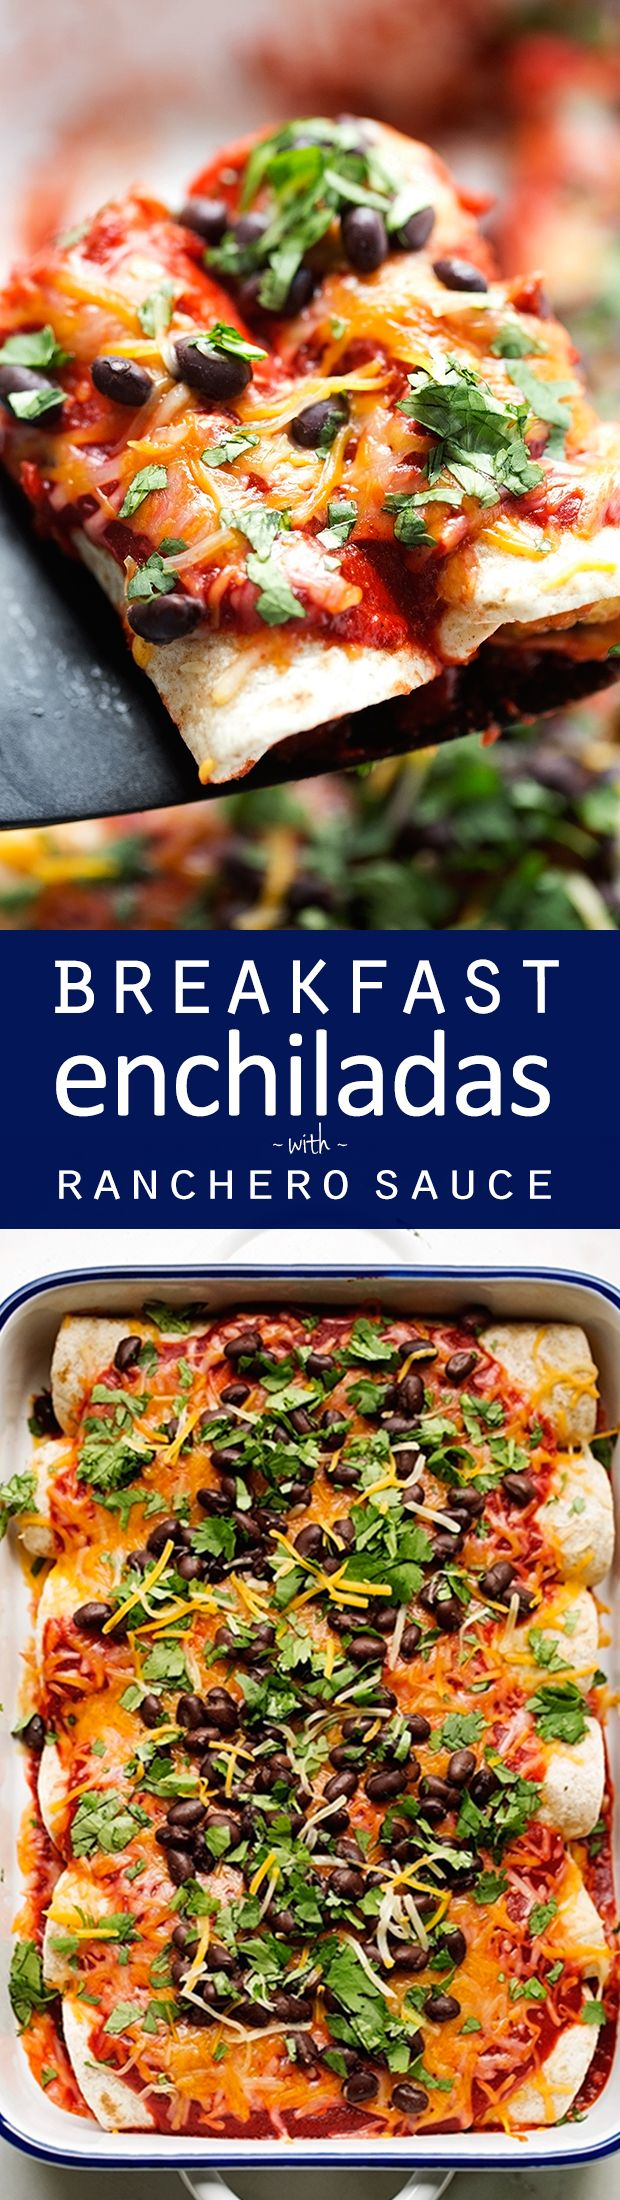 Breakfast enchiladas loaded with shredded potatoes, scrambled eggs, and black beans drizzled with my homemade ranchero sauce and shredded cheese -- comfort food to the max!